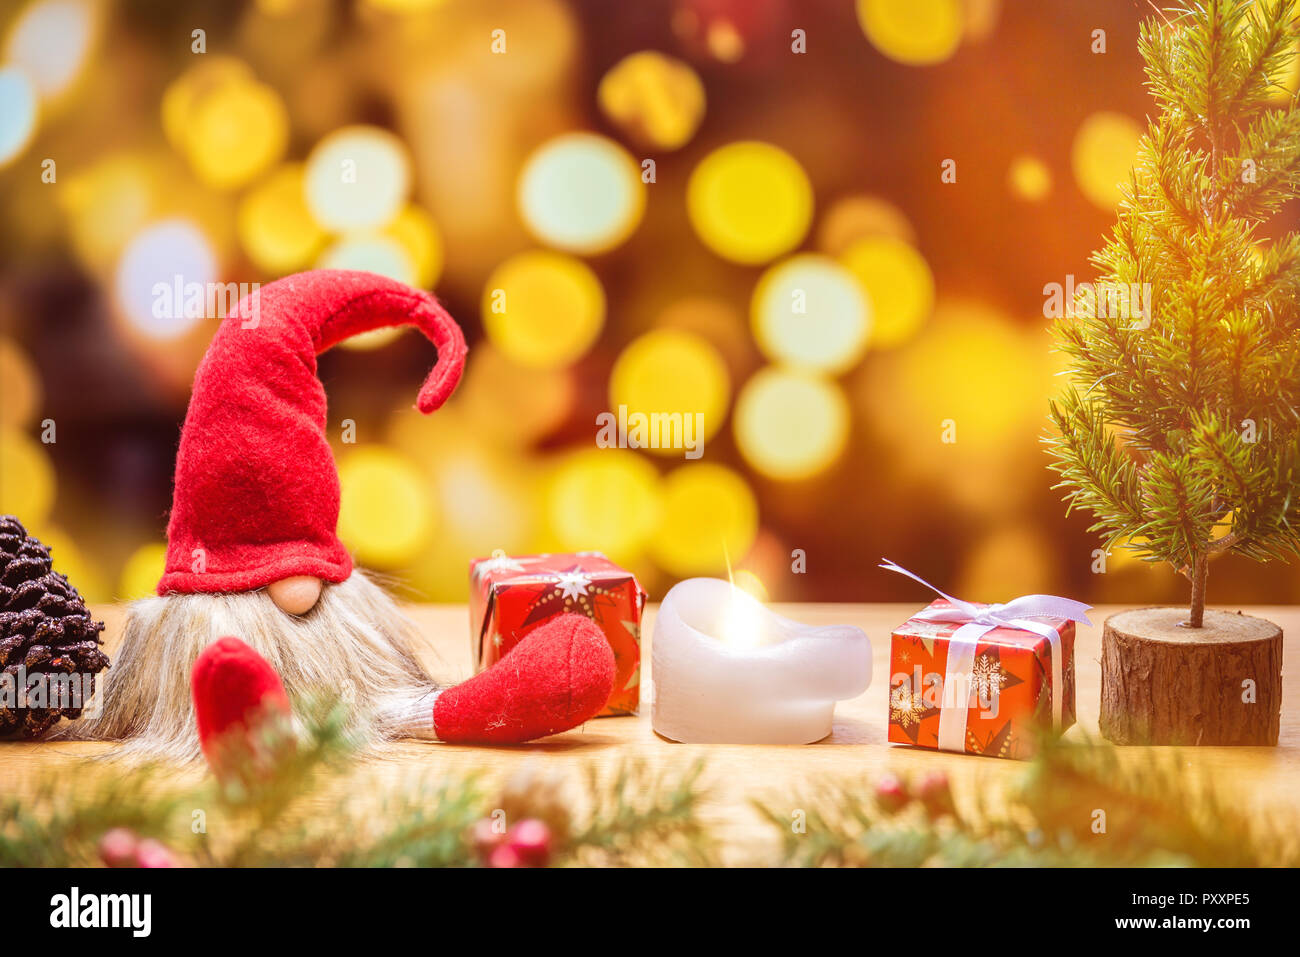 Sitting christmas elf with bokeh lights in background surrounded by christmas decorations as tree and gift boxes - Stock Image